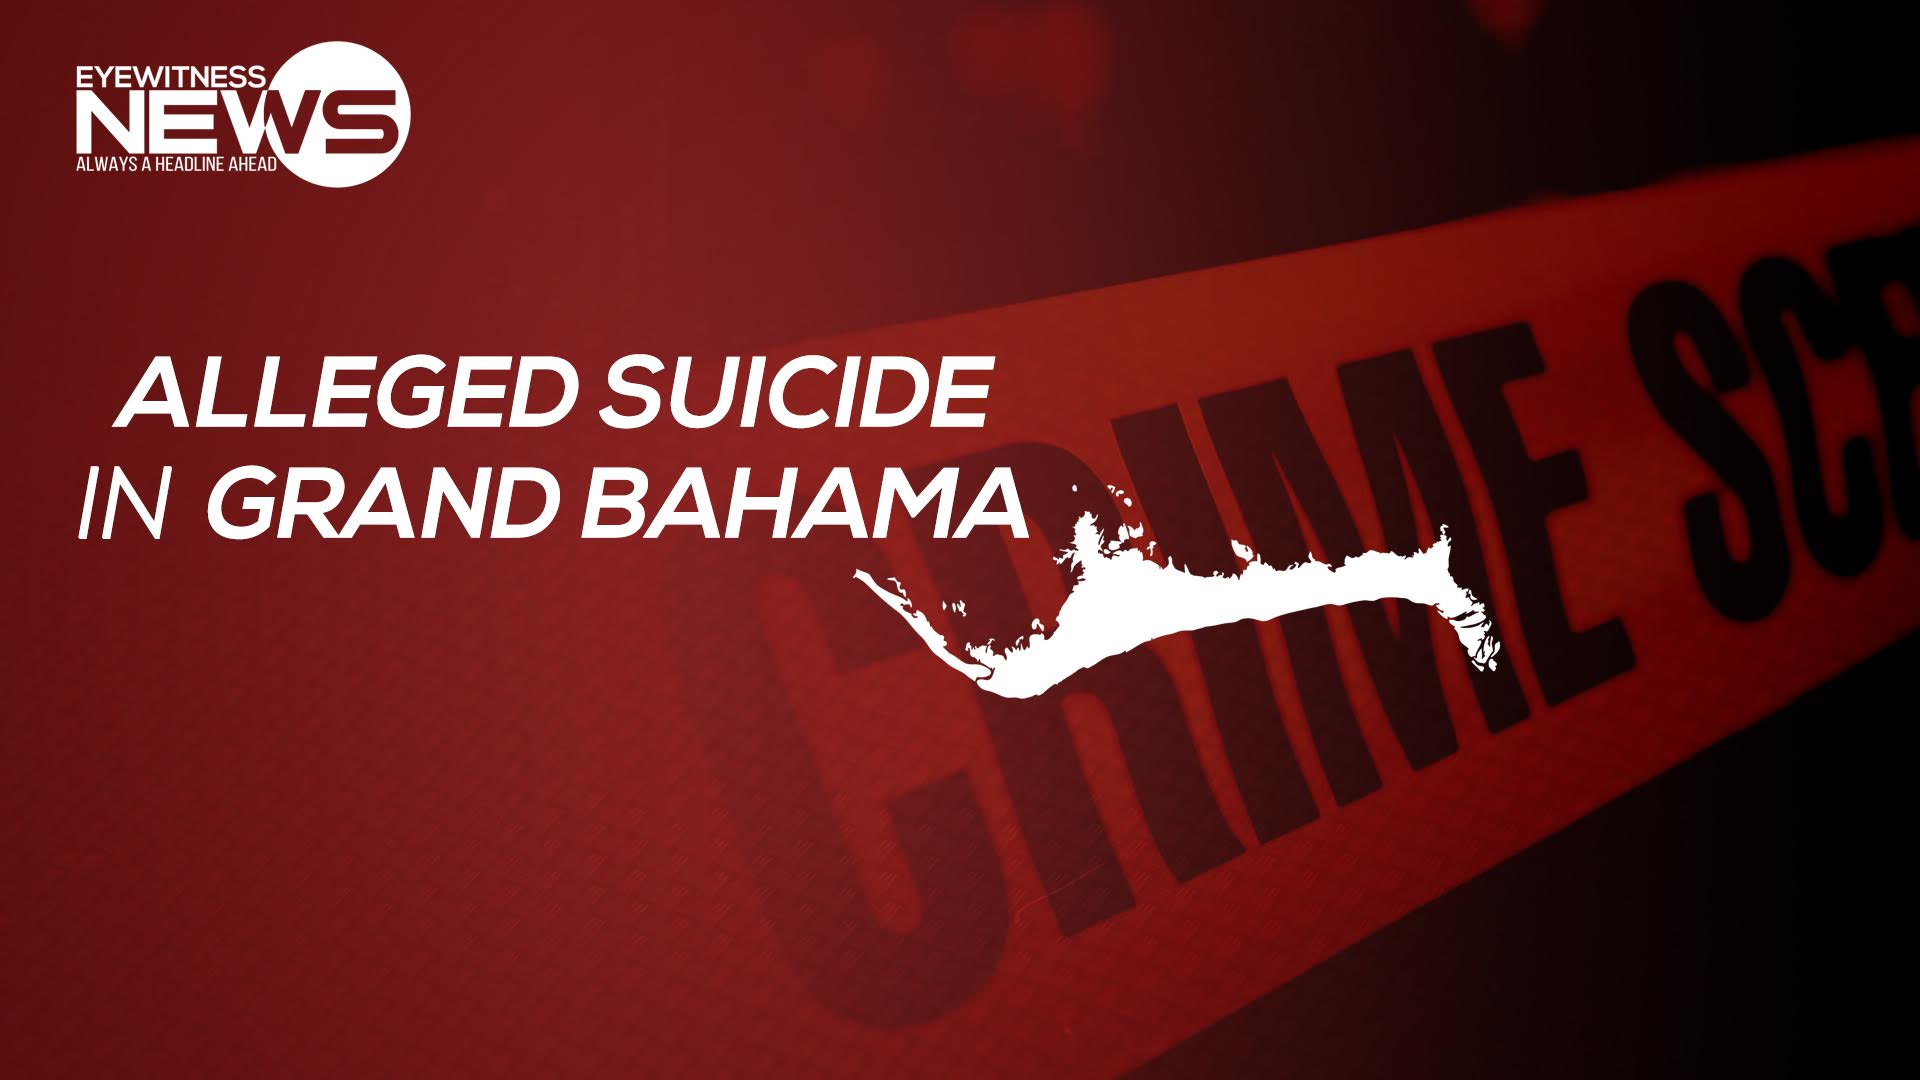 Alleged suicide on Grand Bahama under investigation